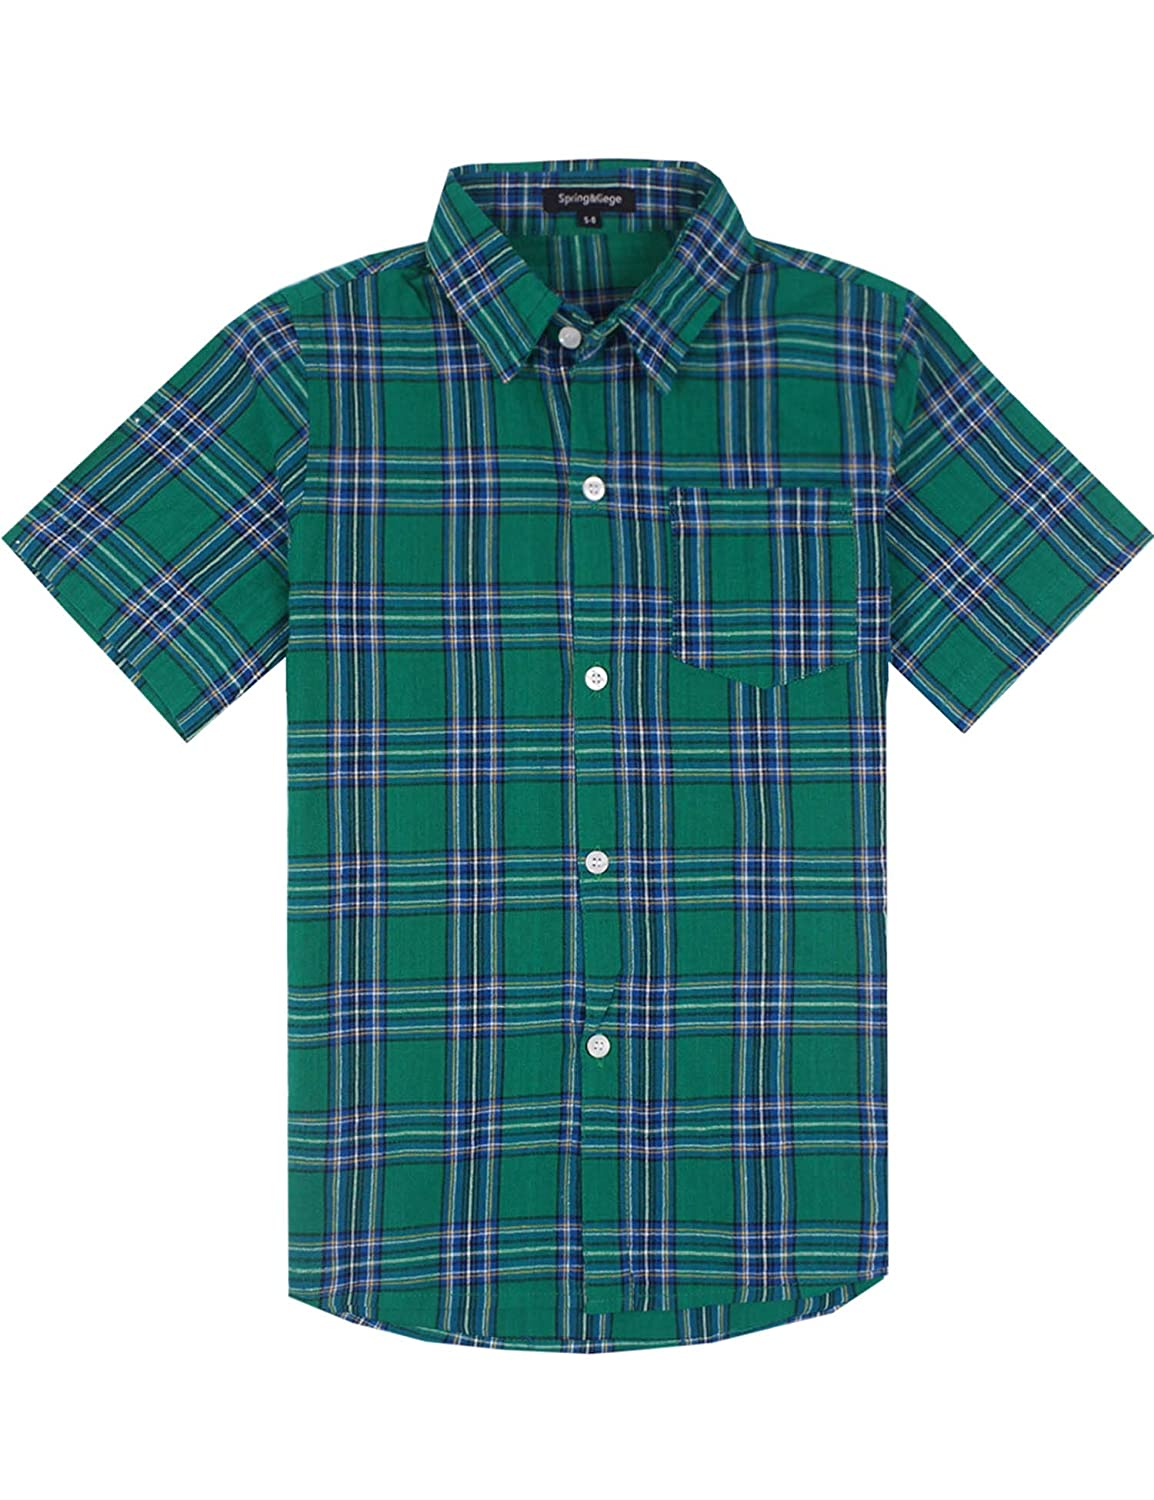 Spring/&Gege Boys Casual Short Sleeve Check Plaid Soft Sport Shirts